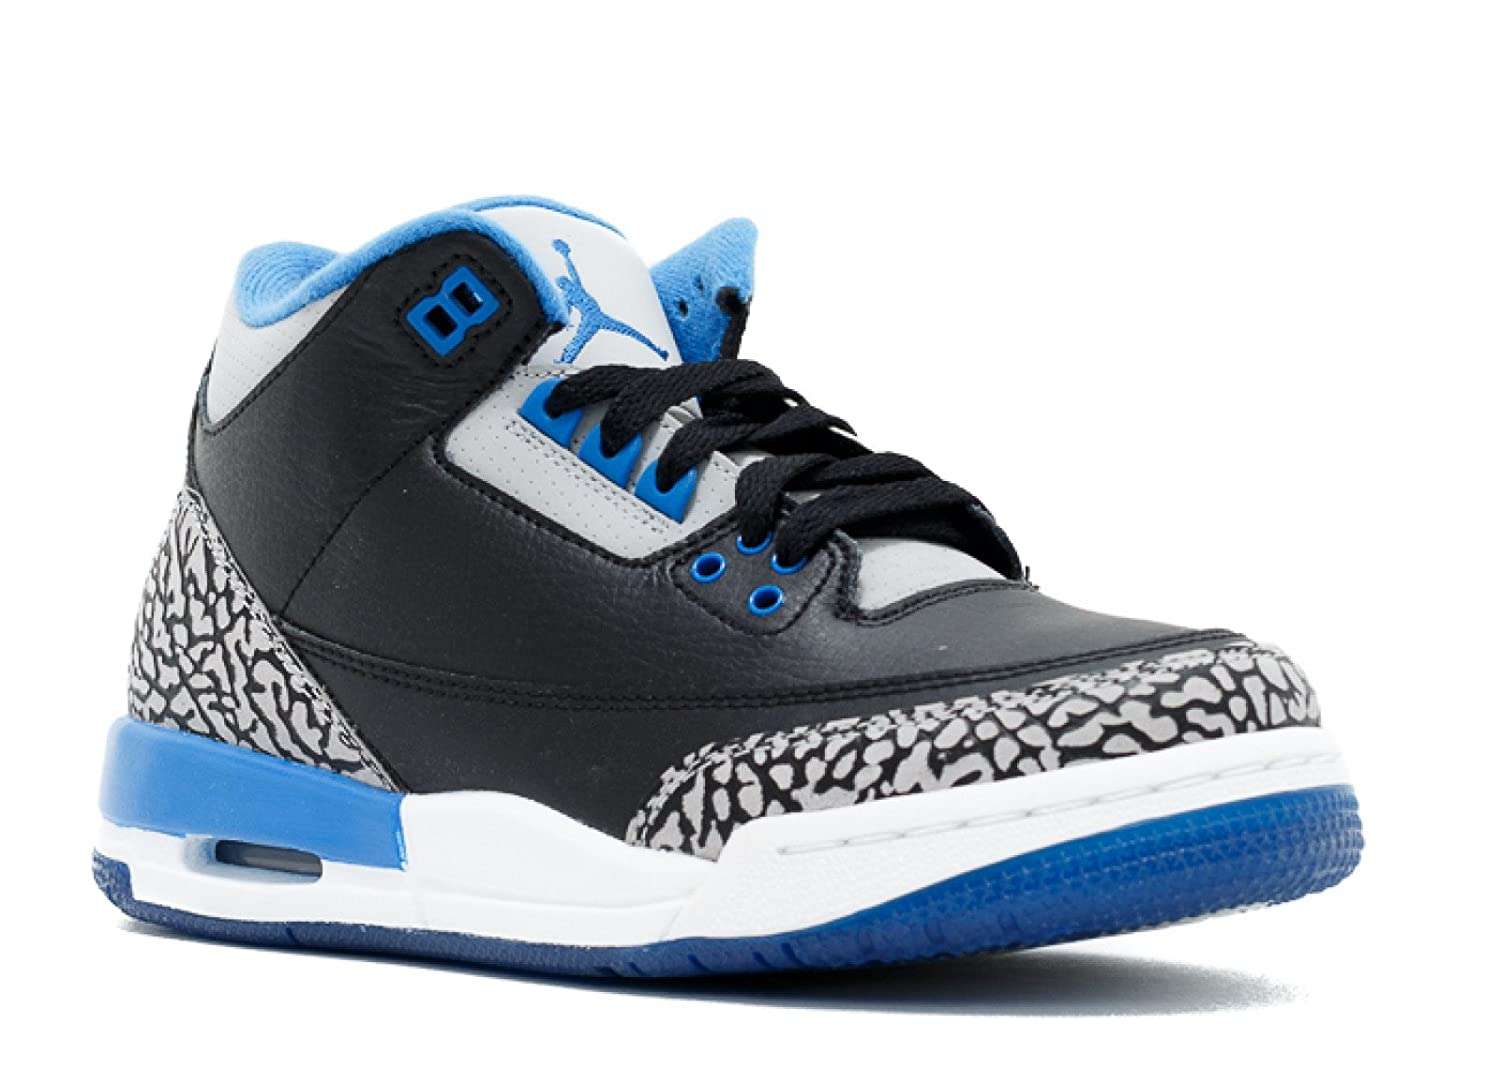 Amazon.com: Jordan Air 3 Retro BG Big Kids Shoes Black/Sport Blue-Wolf Grey 398614-007: Shoes